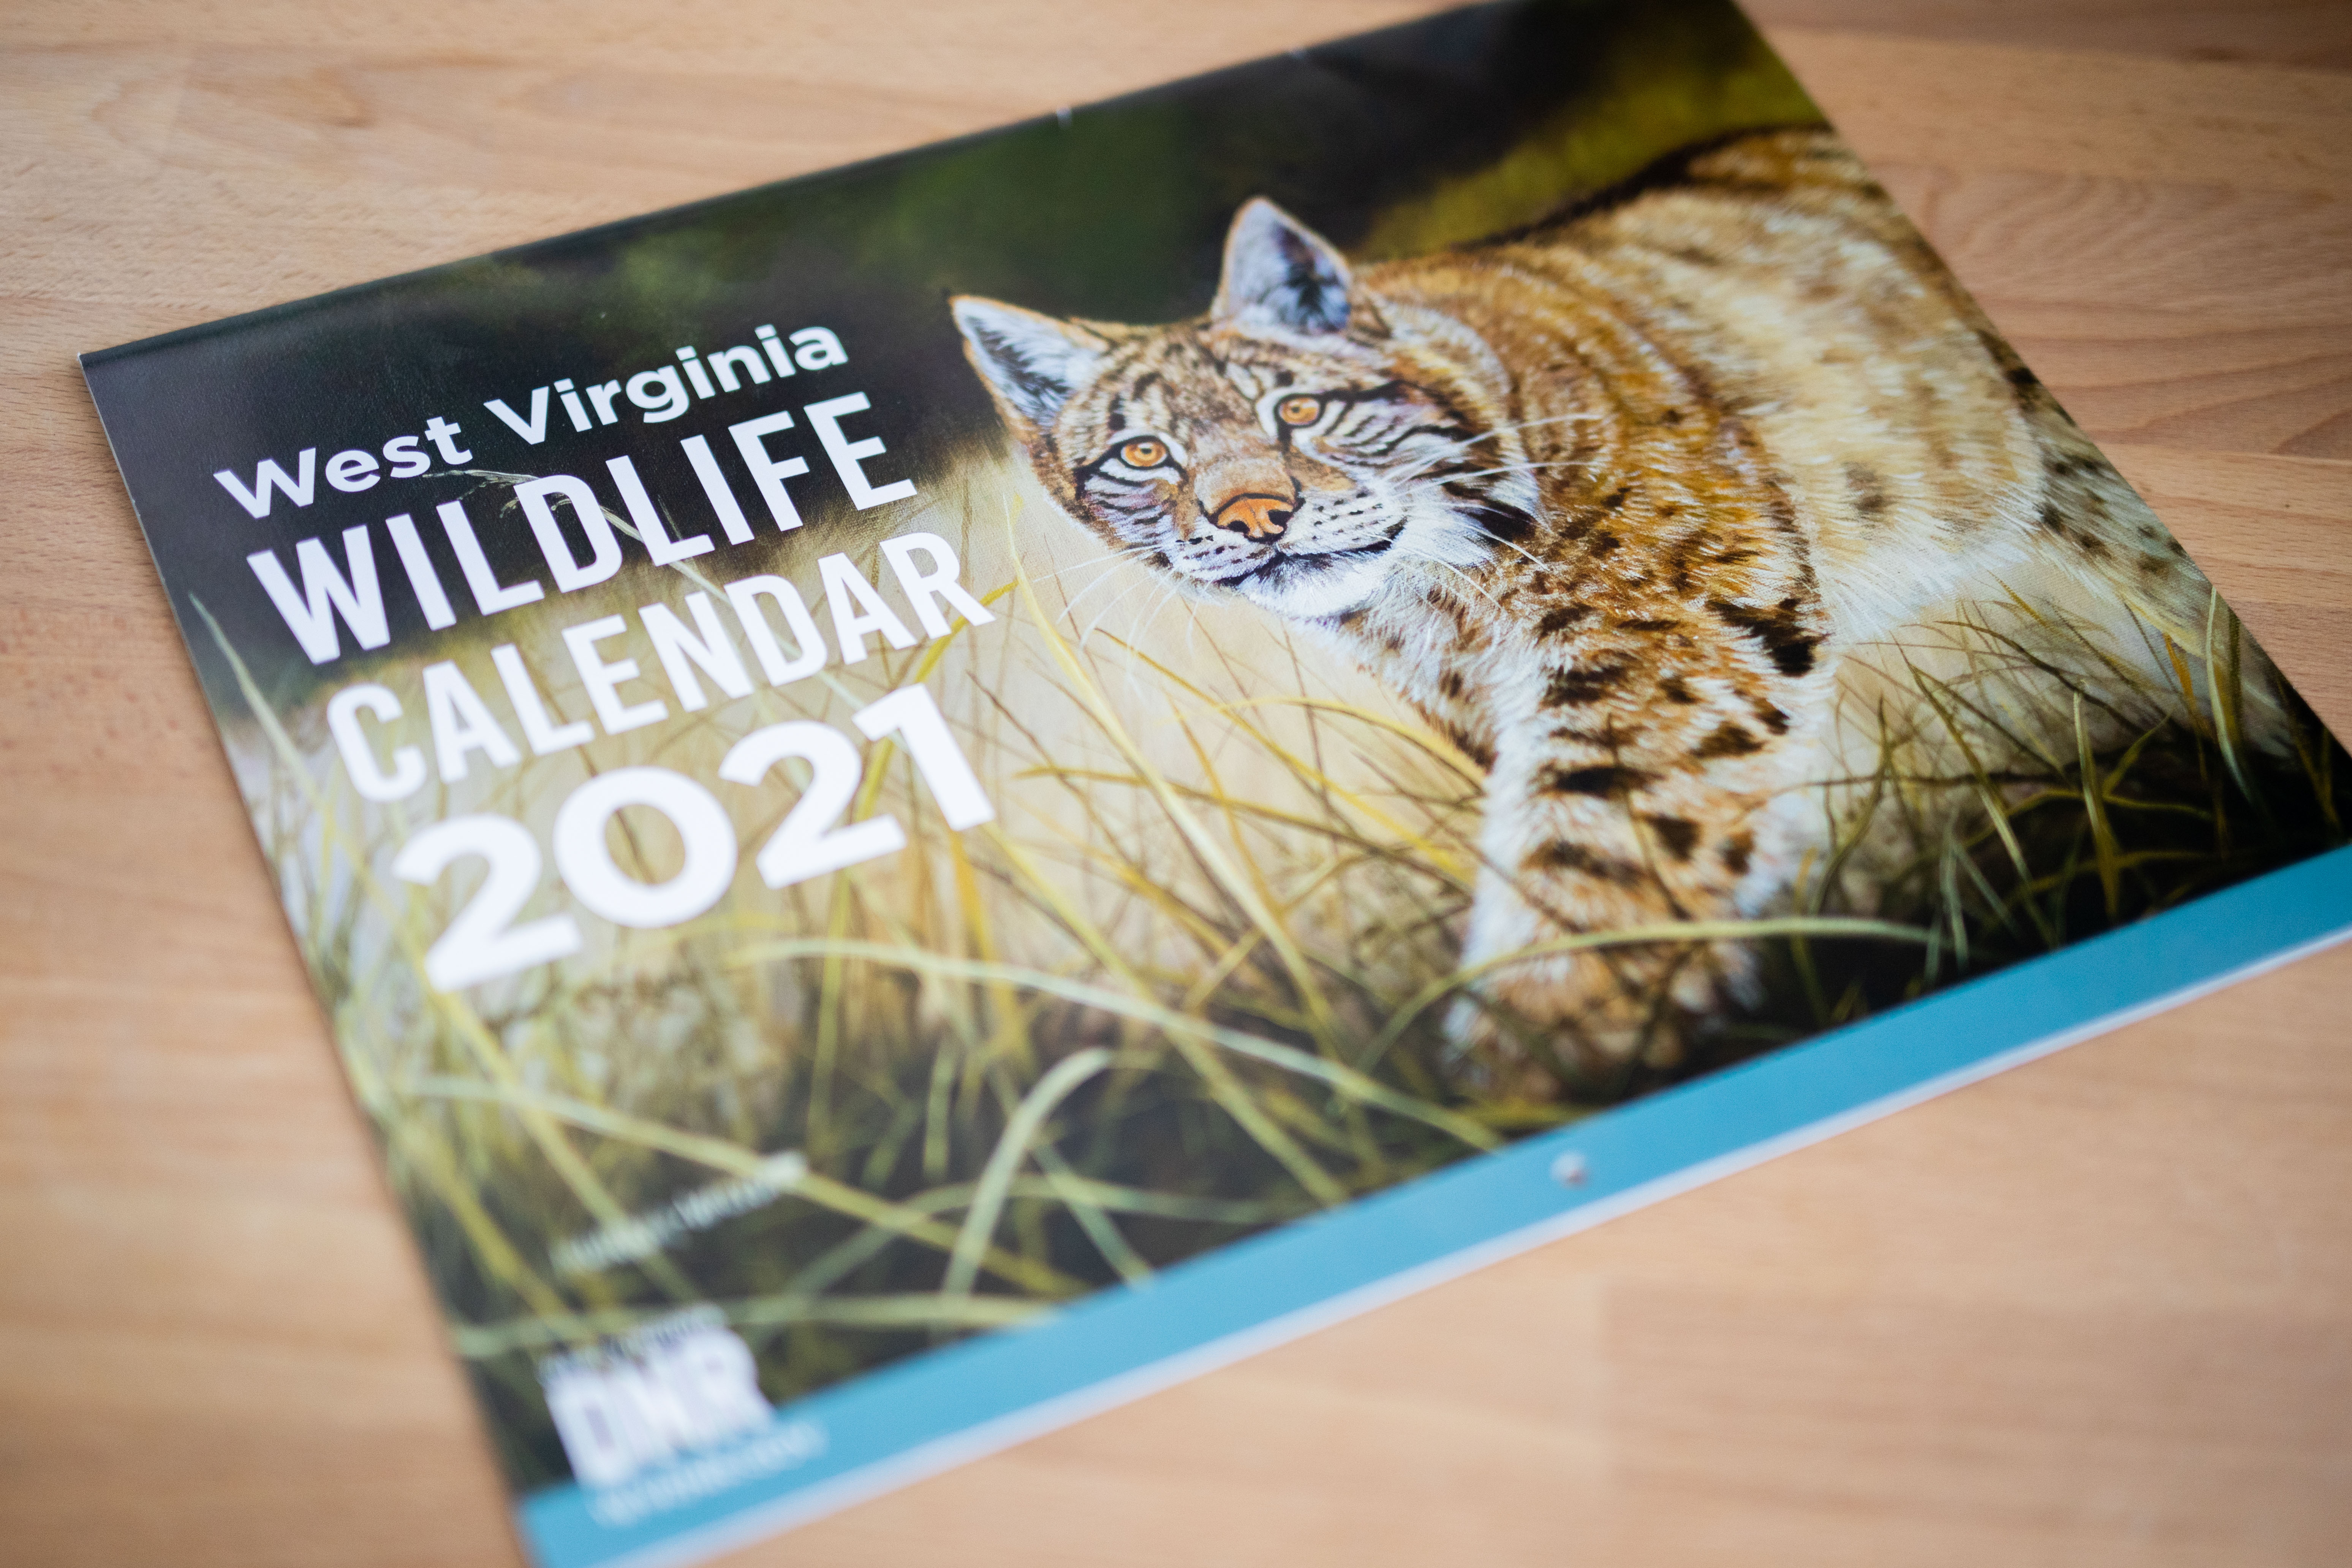 Hunter Fall 2022 Calendar.Wv Wildlife Calendar Makes Great Gift For Hunters And Anglers West Virginia Division Of Natural Resources